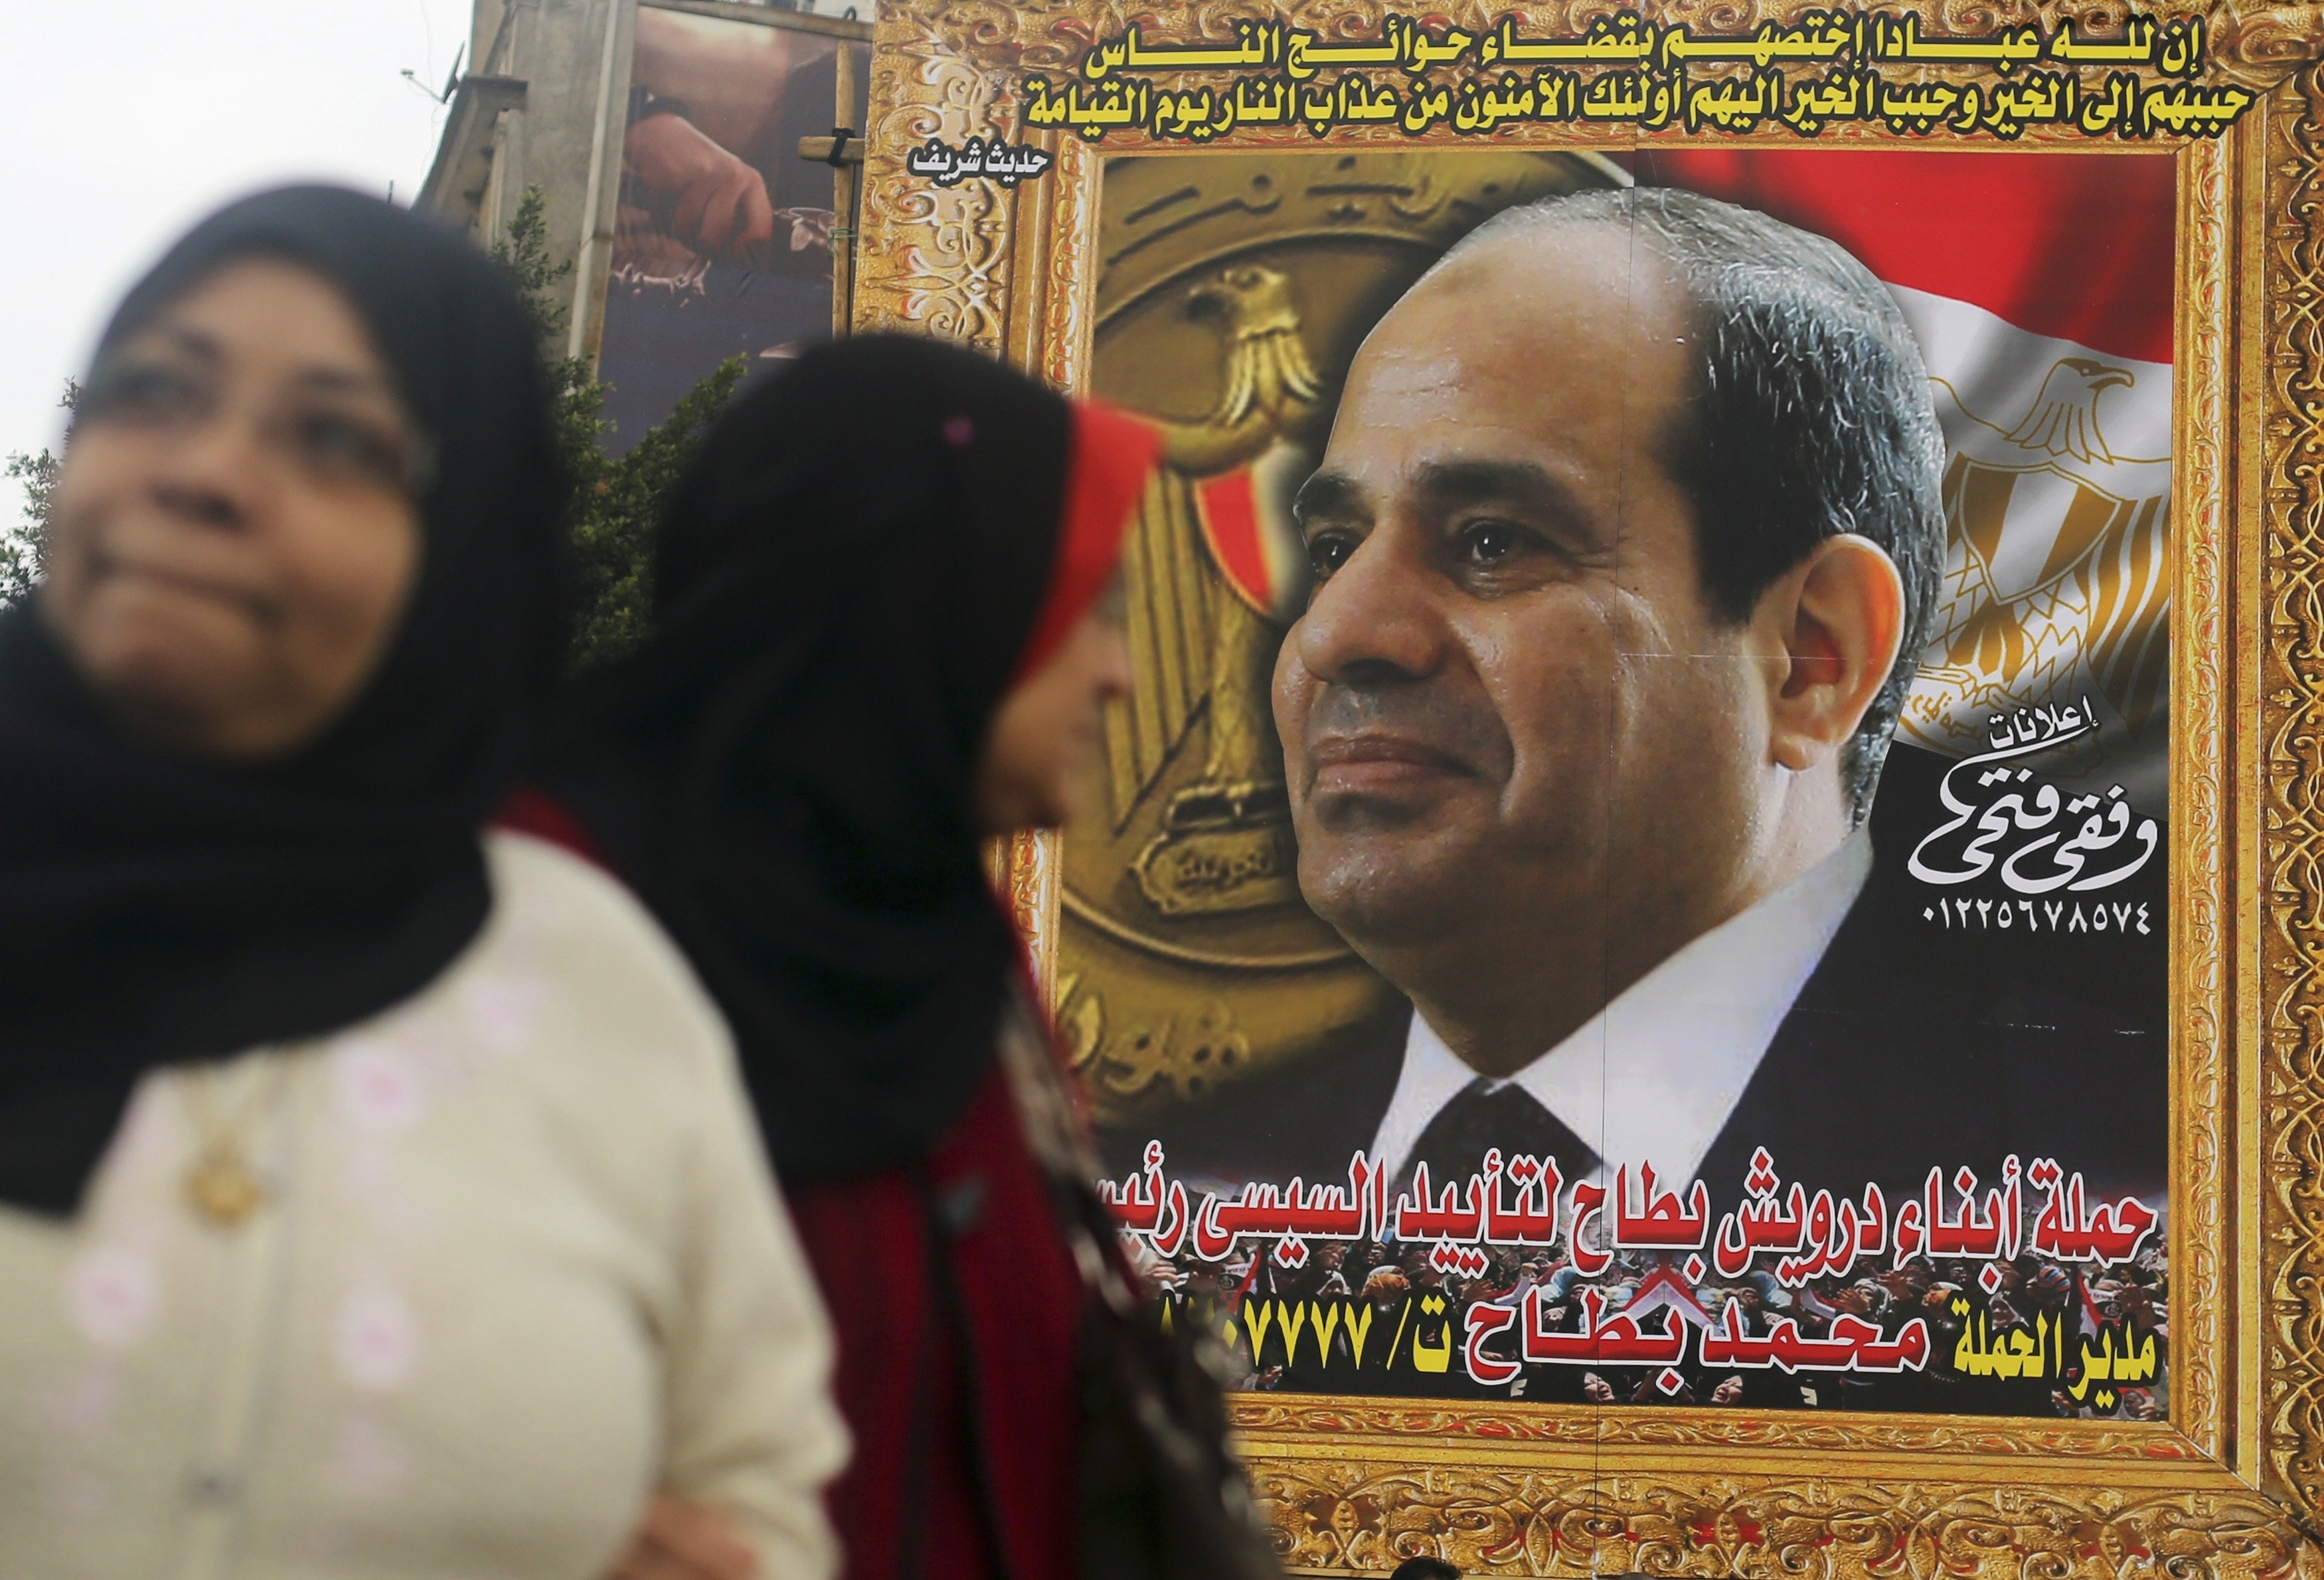 Women walk in front of a huge banner for Egypt's army chief, Field Marshal Abdel Fattah al-Sisi in downtown Cairo, March 13, 2014.